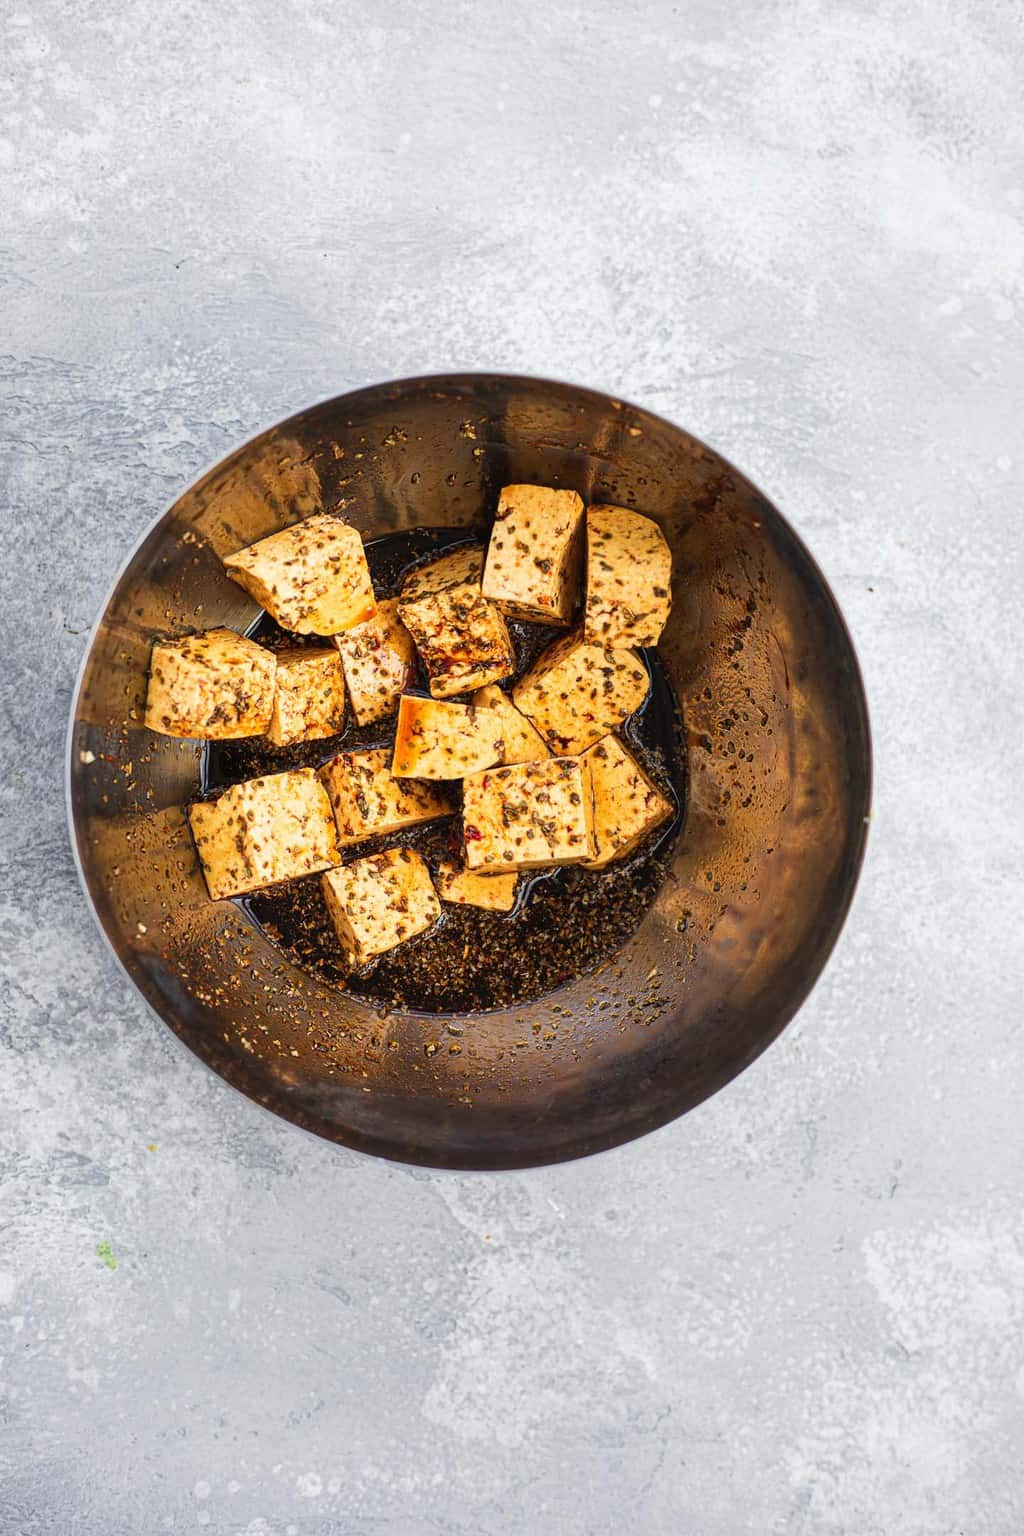 Tofu marinading in a bowl